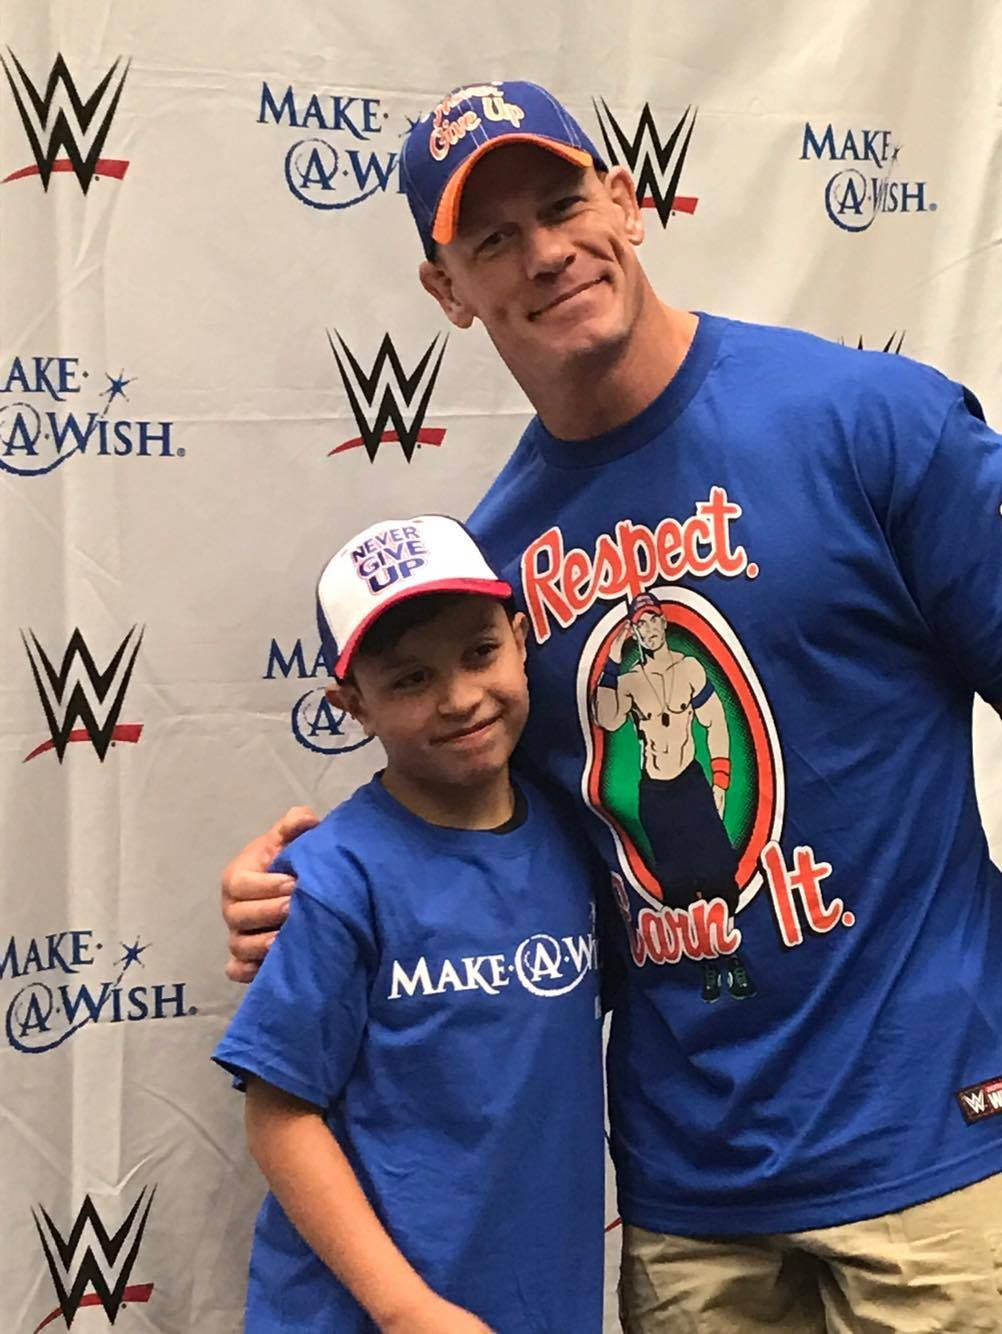 Make-A-Wish Foundation grants 10-year-old boy's wish, to meet John Cena during wrestling match in Corpus Christi.